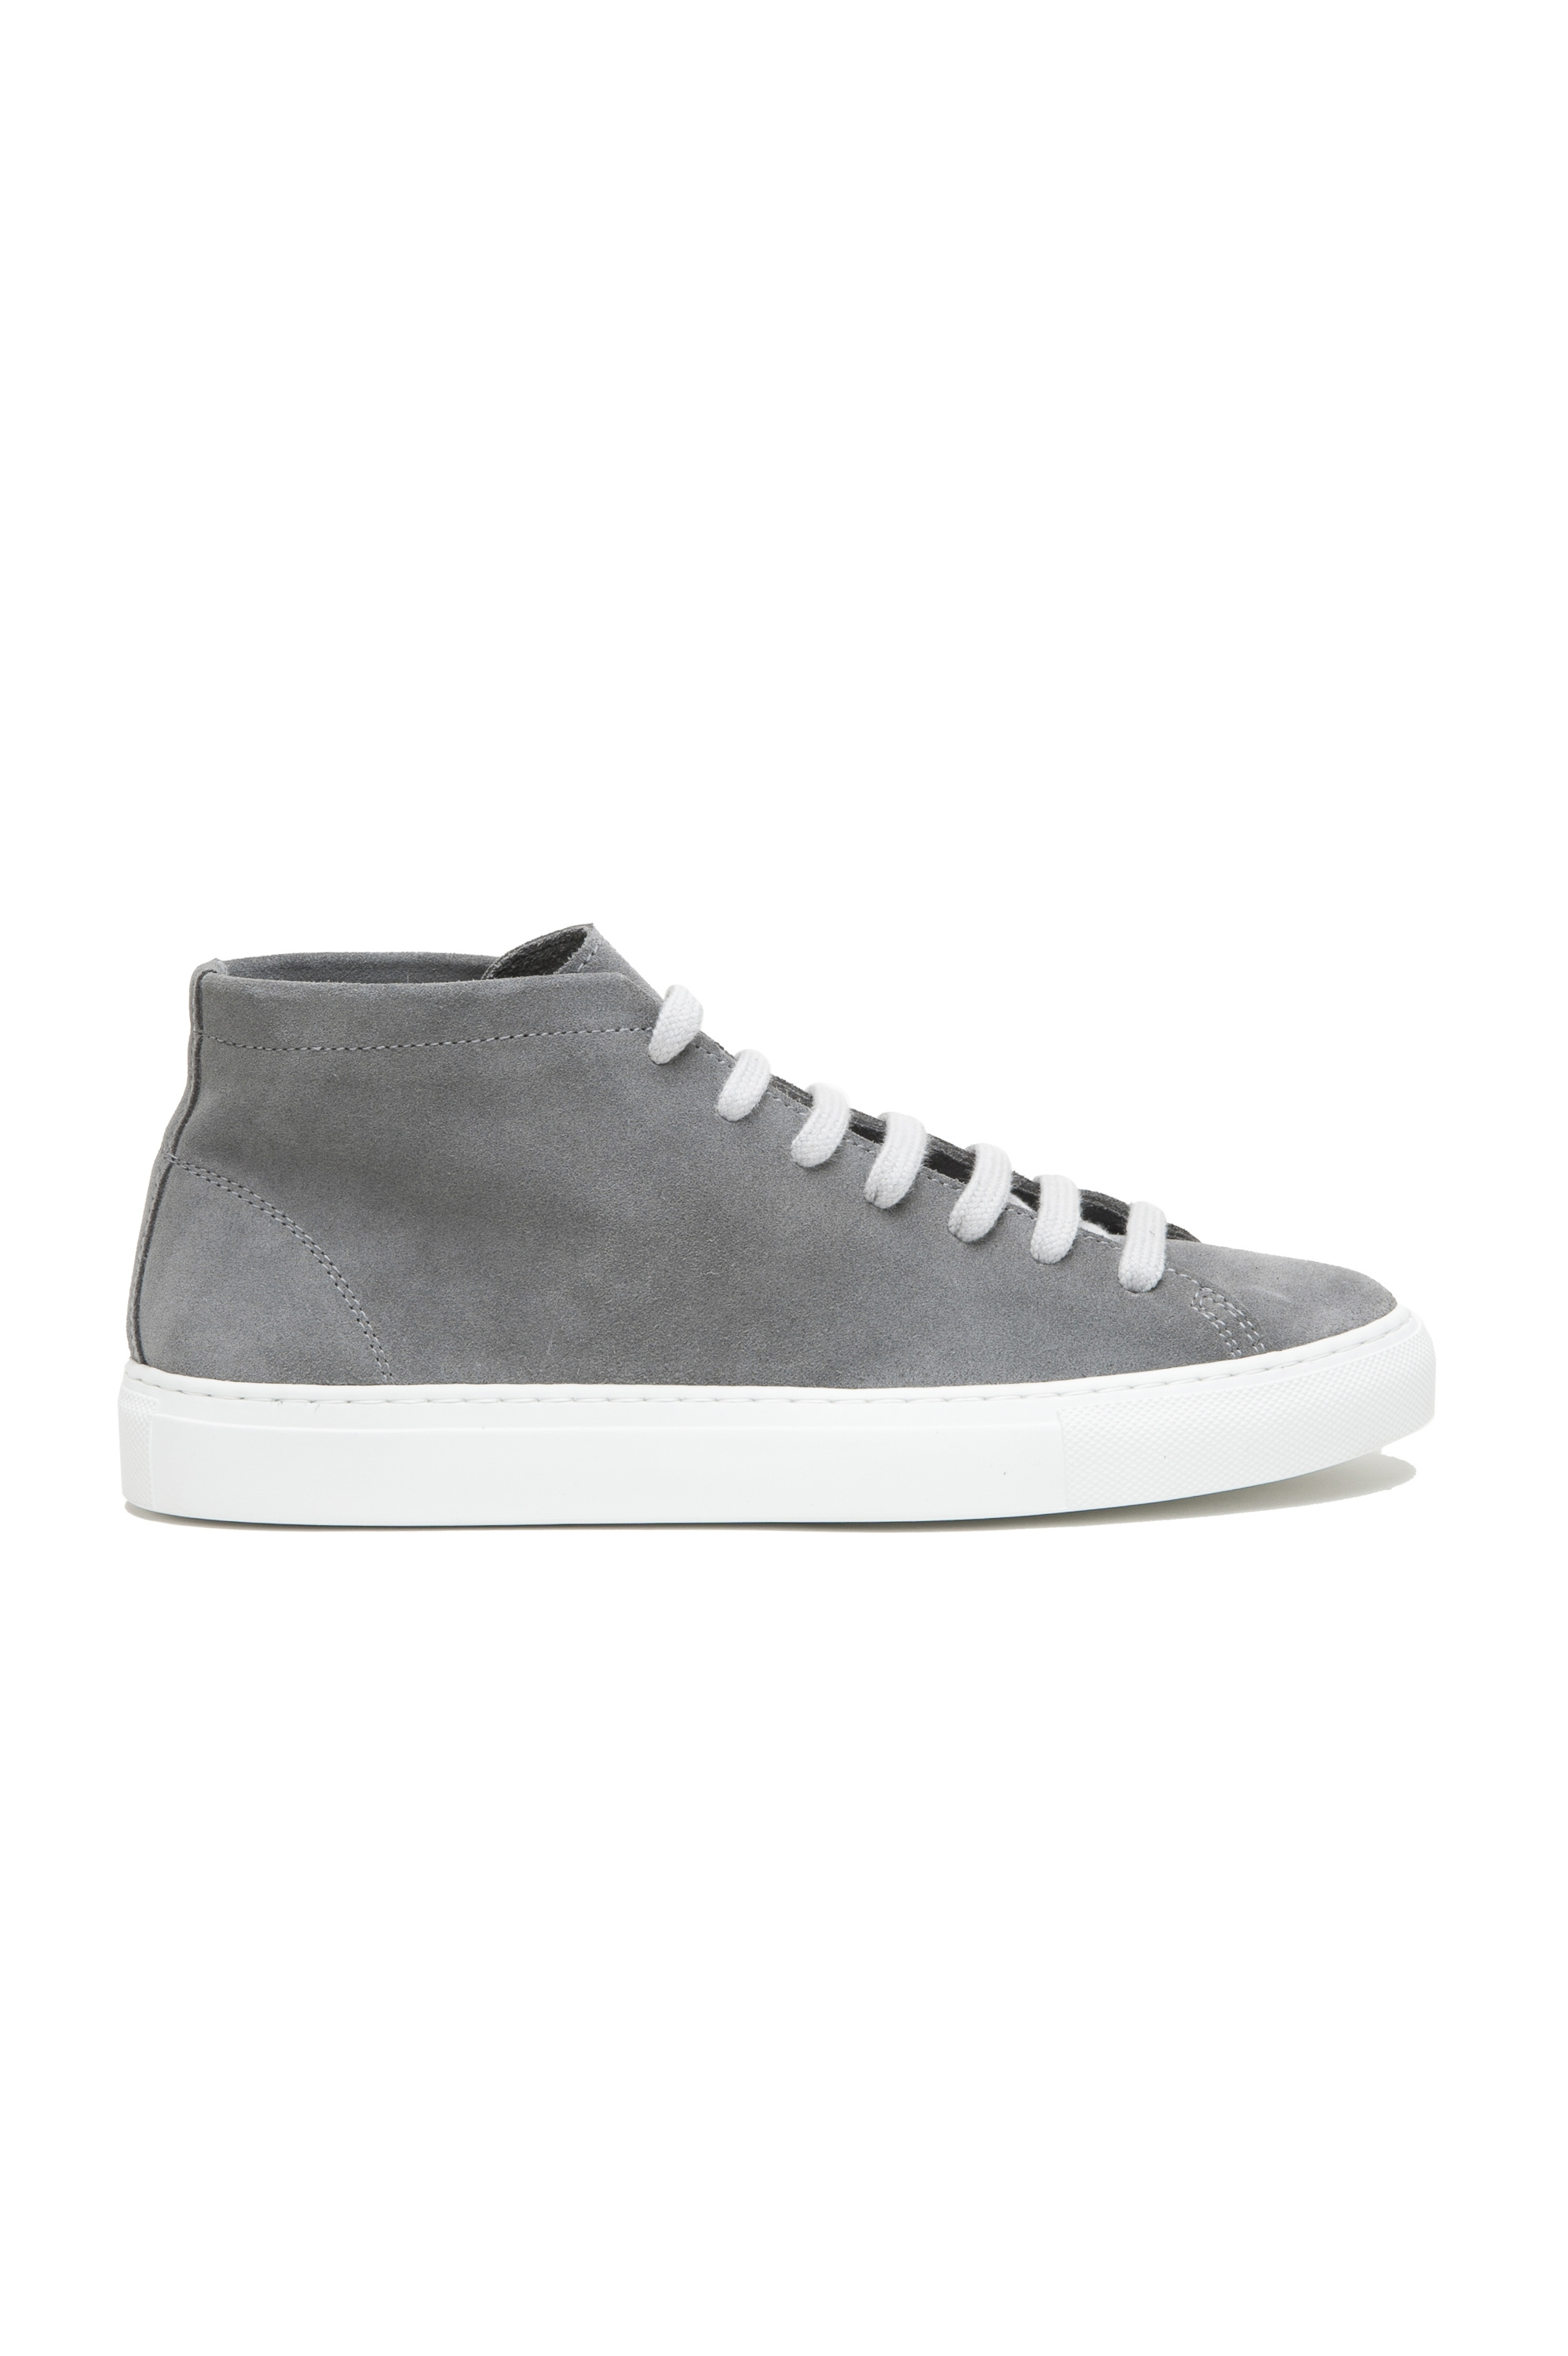 SBU 02864_2020SS Grey mid top lace up sneakers in suede leather 01